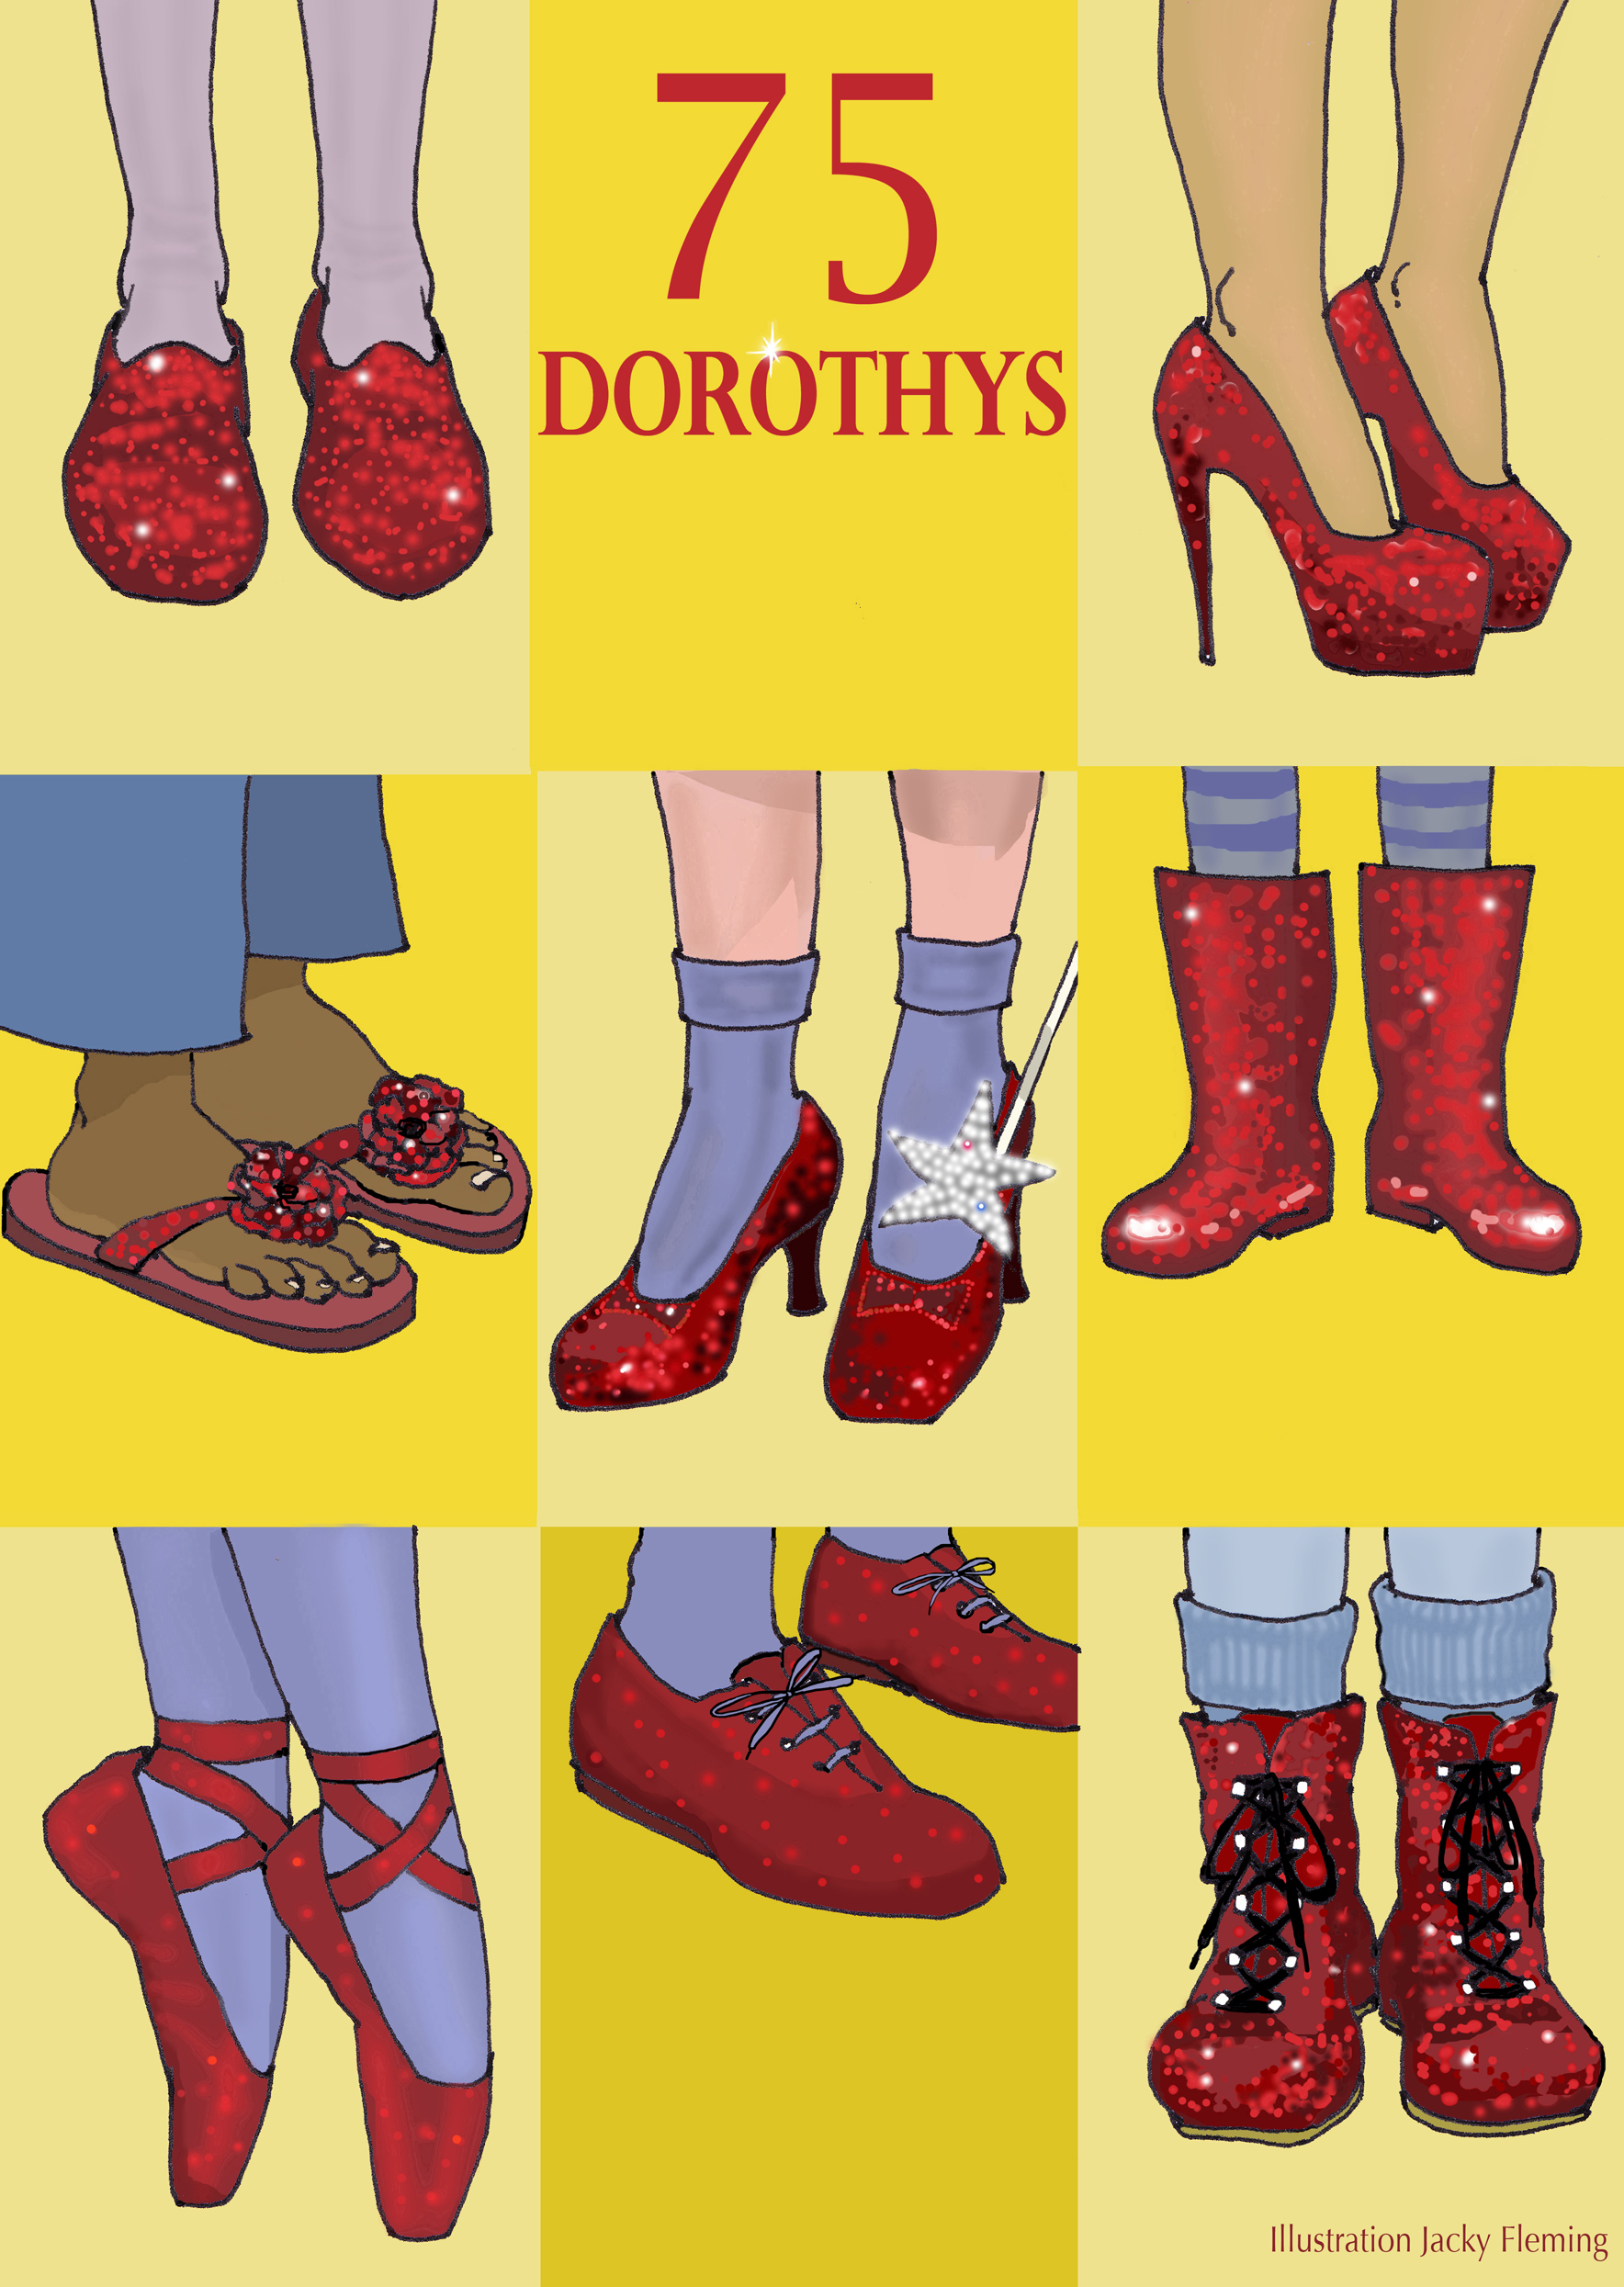 75 Dorothys - illustration Jacky Fleming